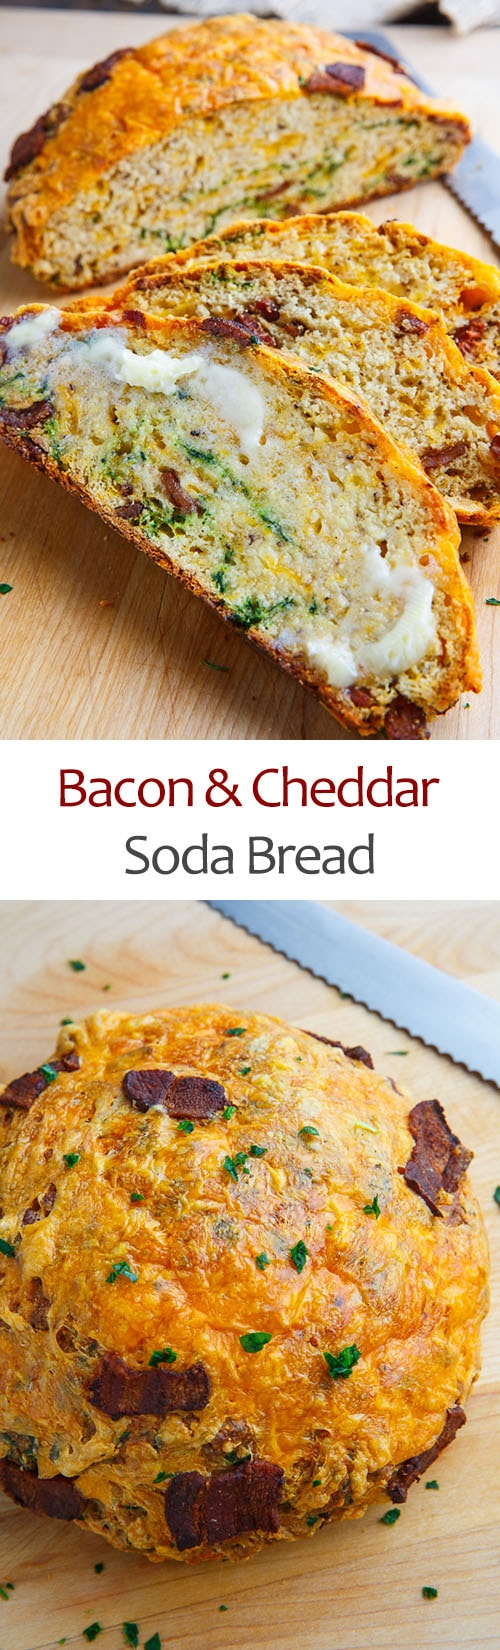 Bacon and Cheddar Soda Bread